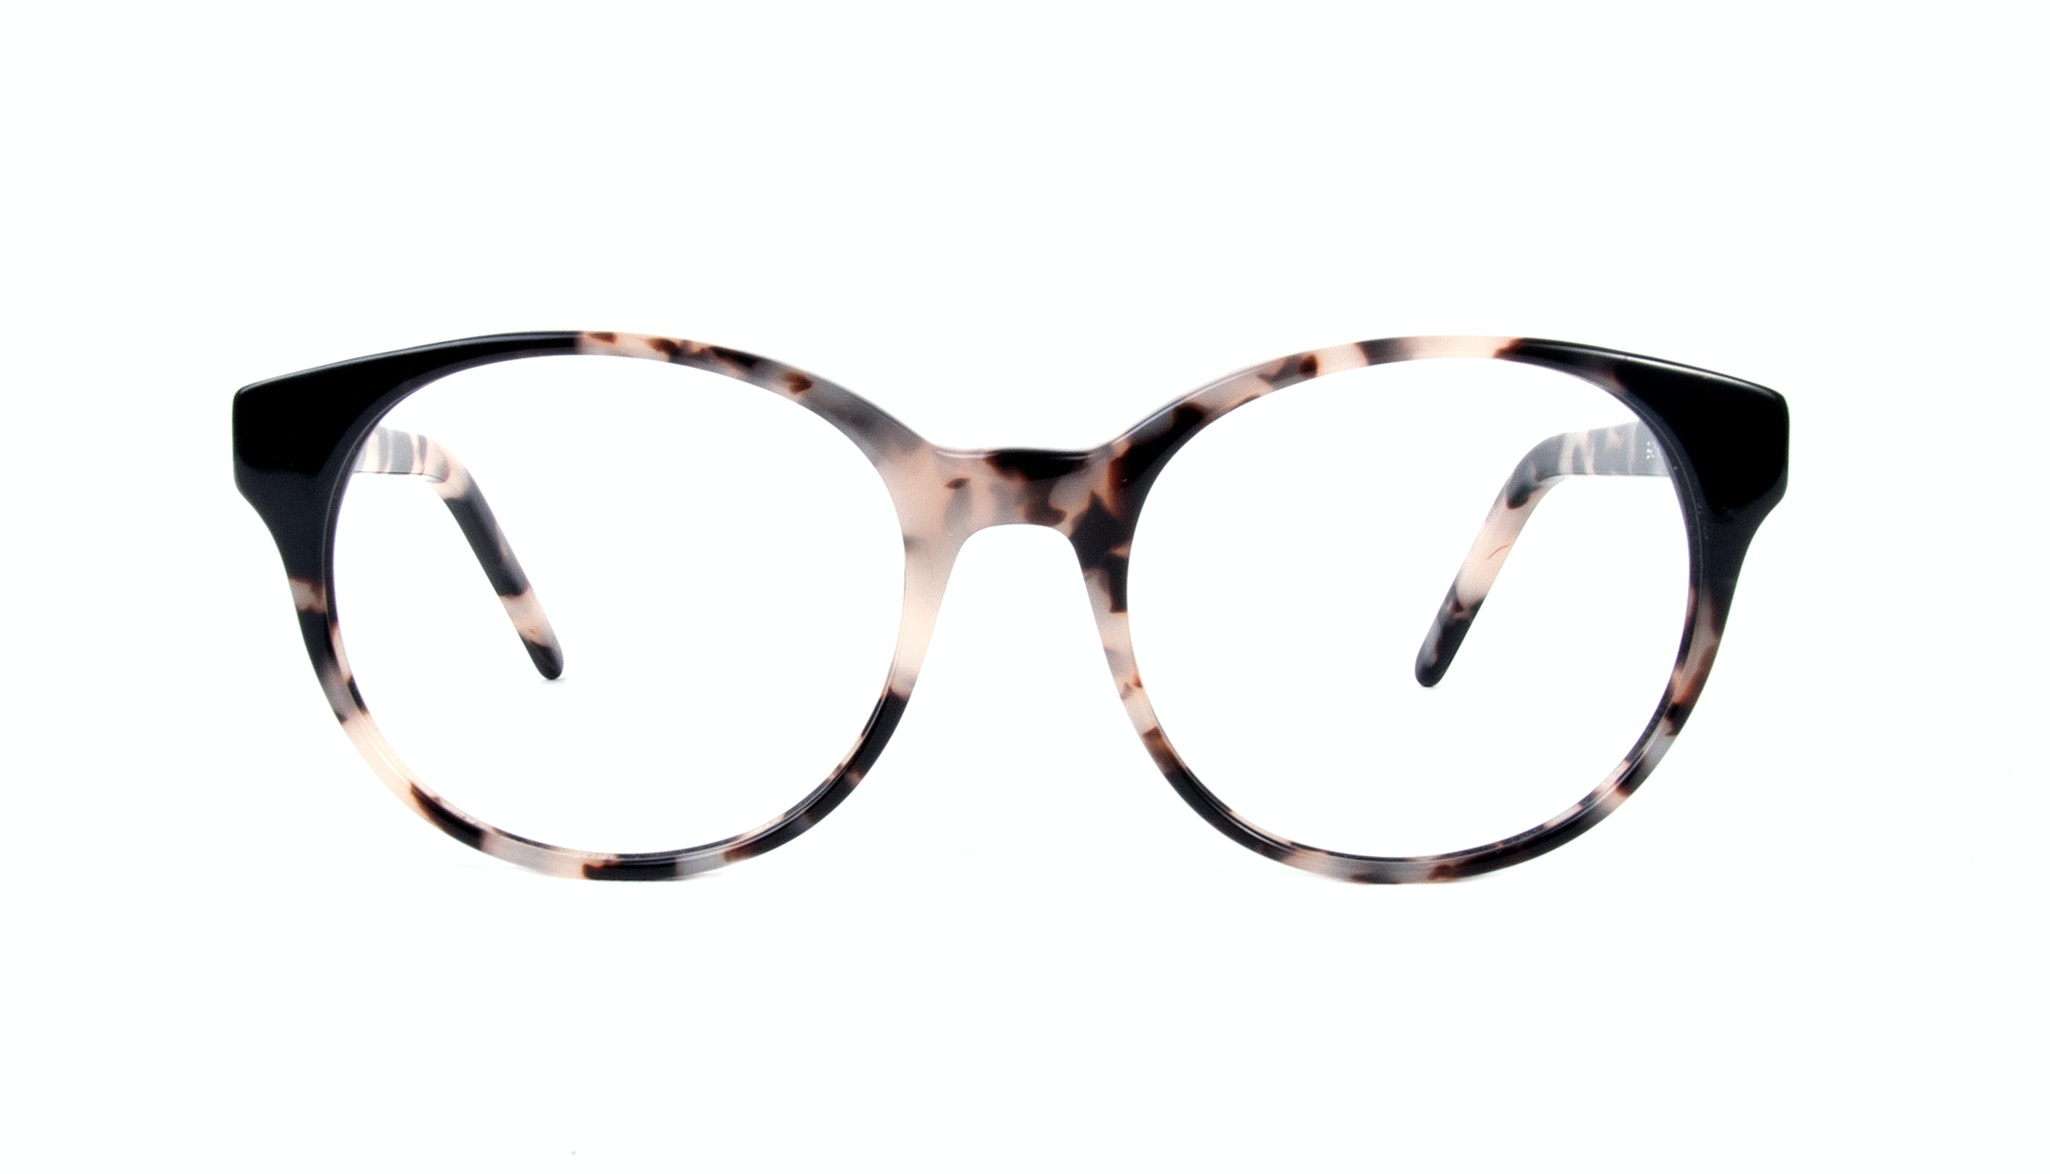 Affordable Fashion Glasses Round Eyeglasses Women Bis Granite Onyx